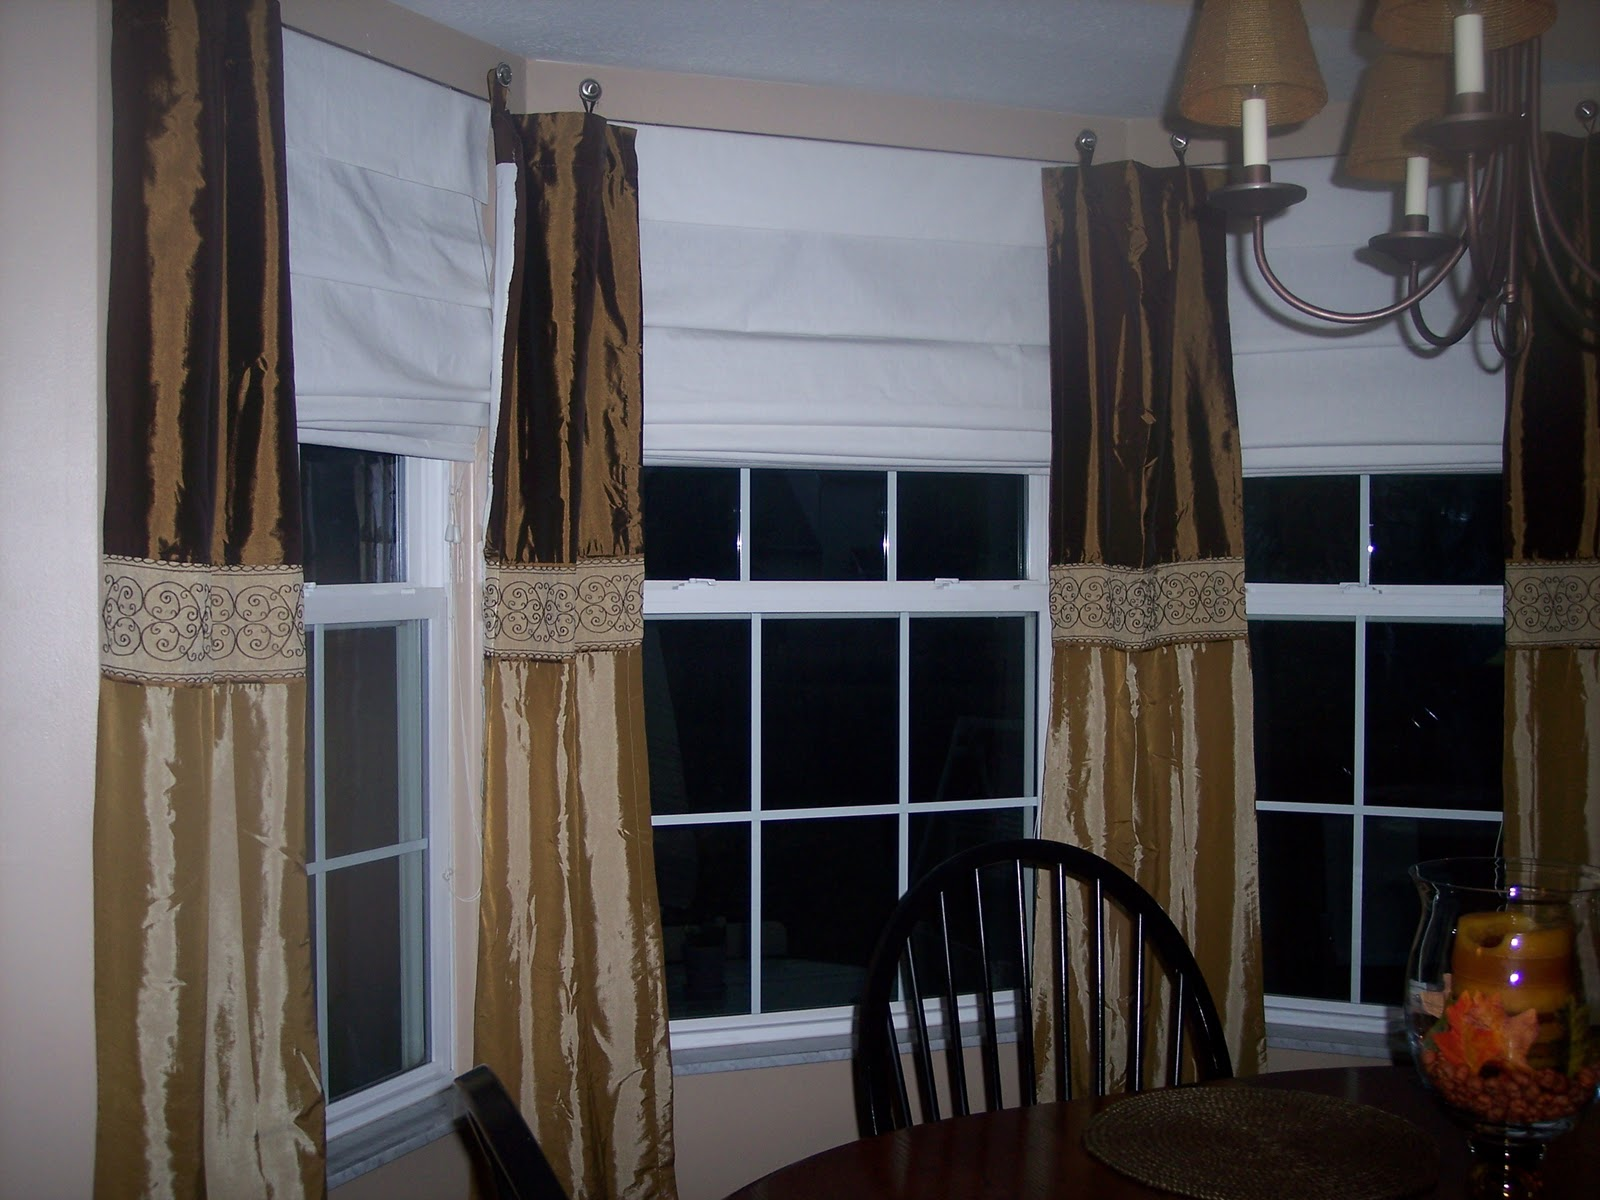 Window Treatments For A Square Bay Windows More no-sew window ...